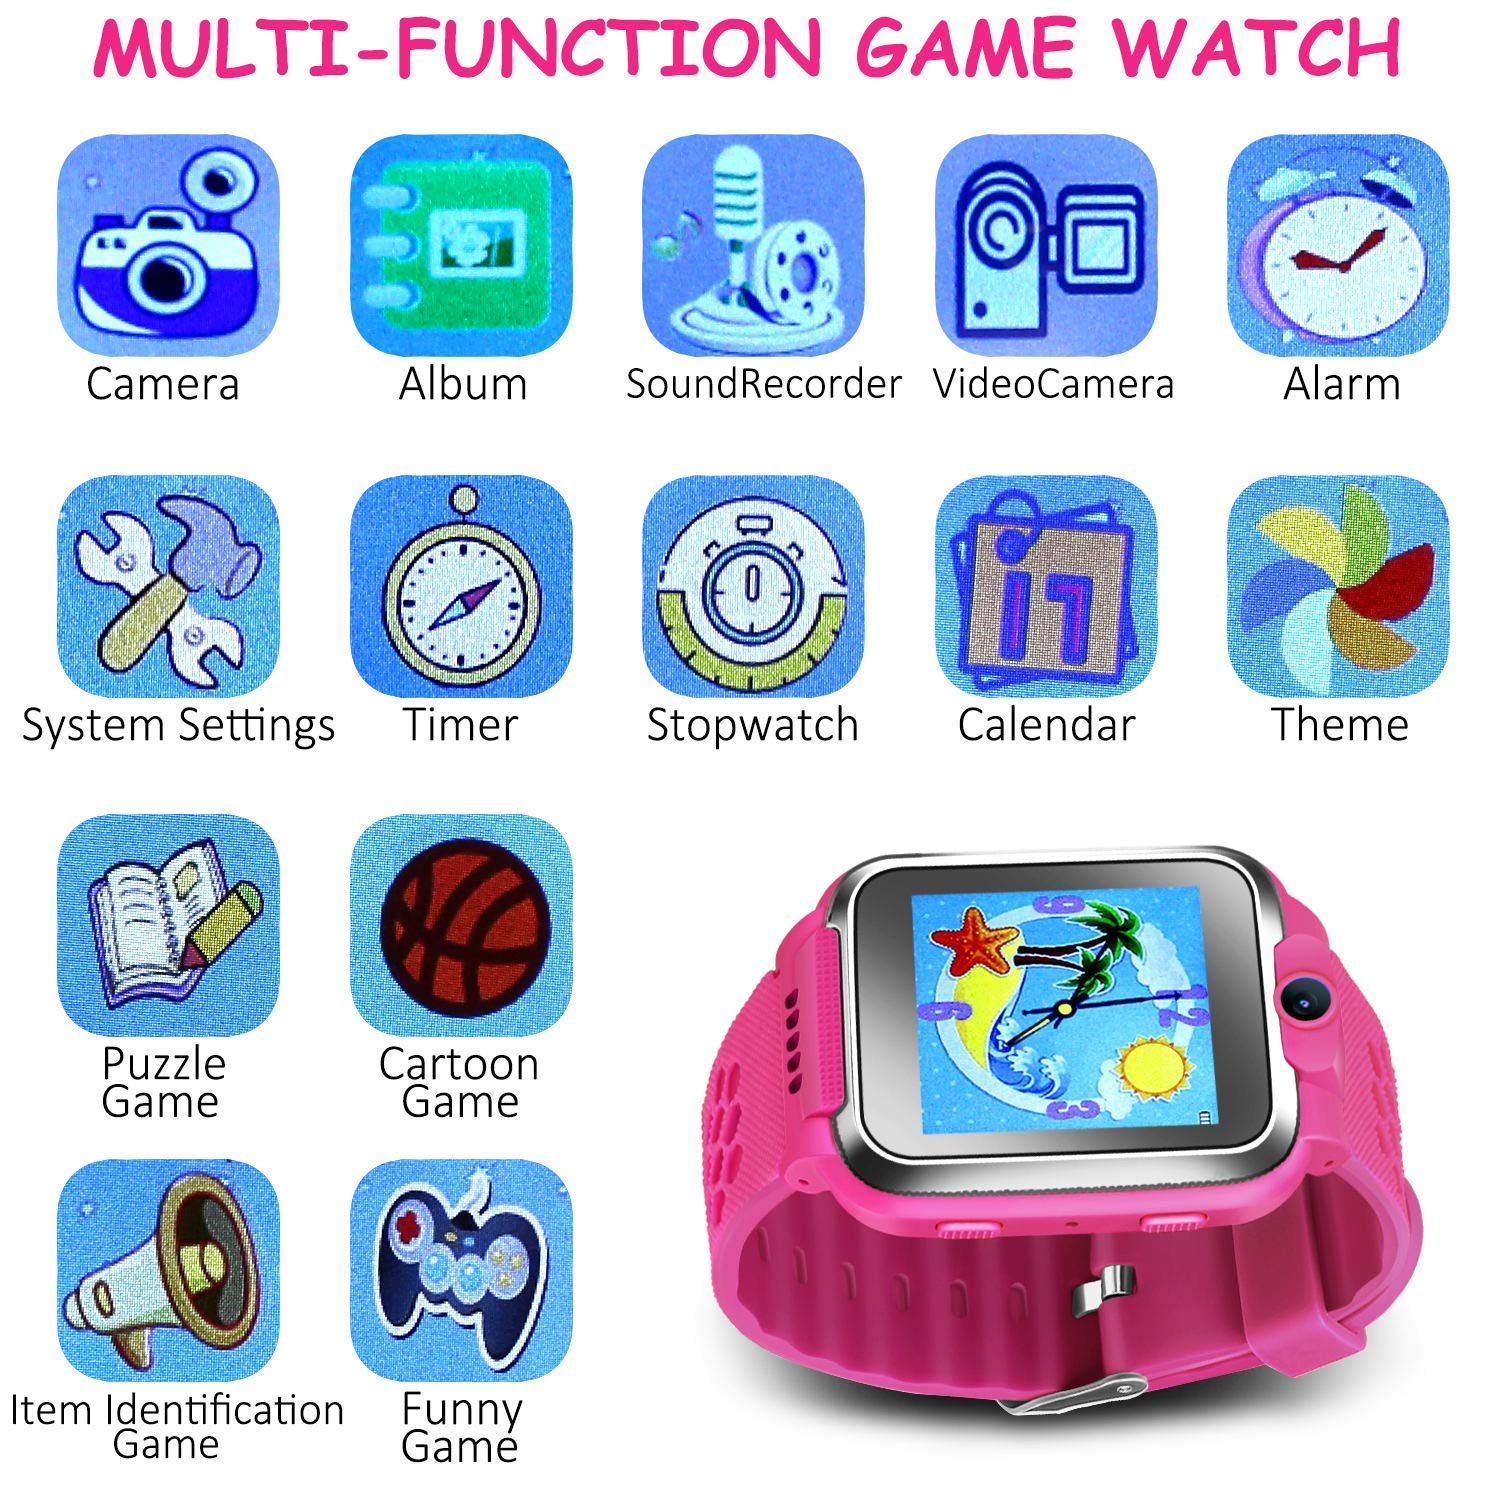 ZOPPRI Kids Game smartwatch Touch Screen Kinds of Games Kids Watch Theme Calendar Stopwatch Alarm Clock Photo Timer Multi-Function Watch Toy Gift for 3-12 Years Old boy Girl Birthday Gift (Pink) by ZOPPRI (Image #5)